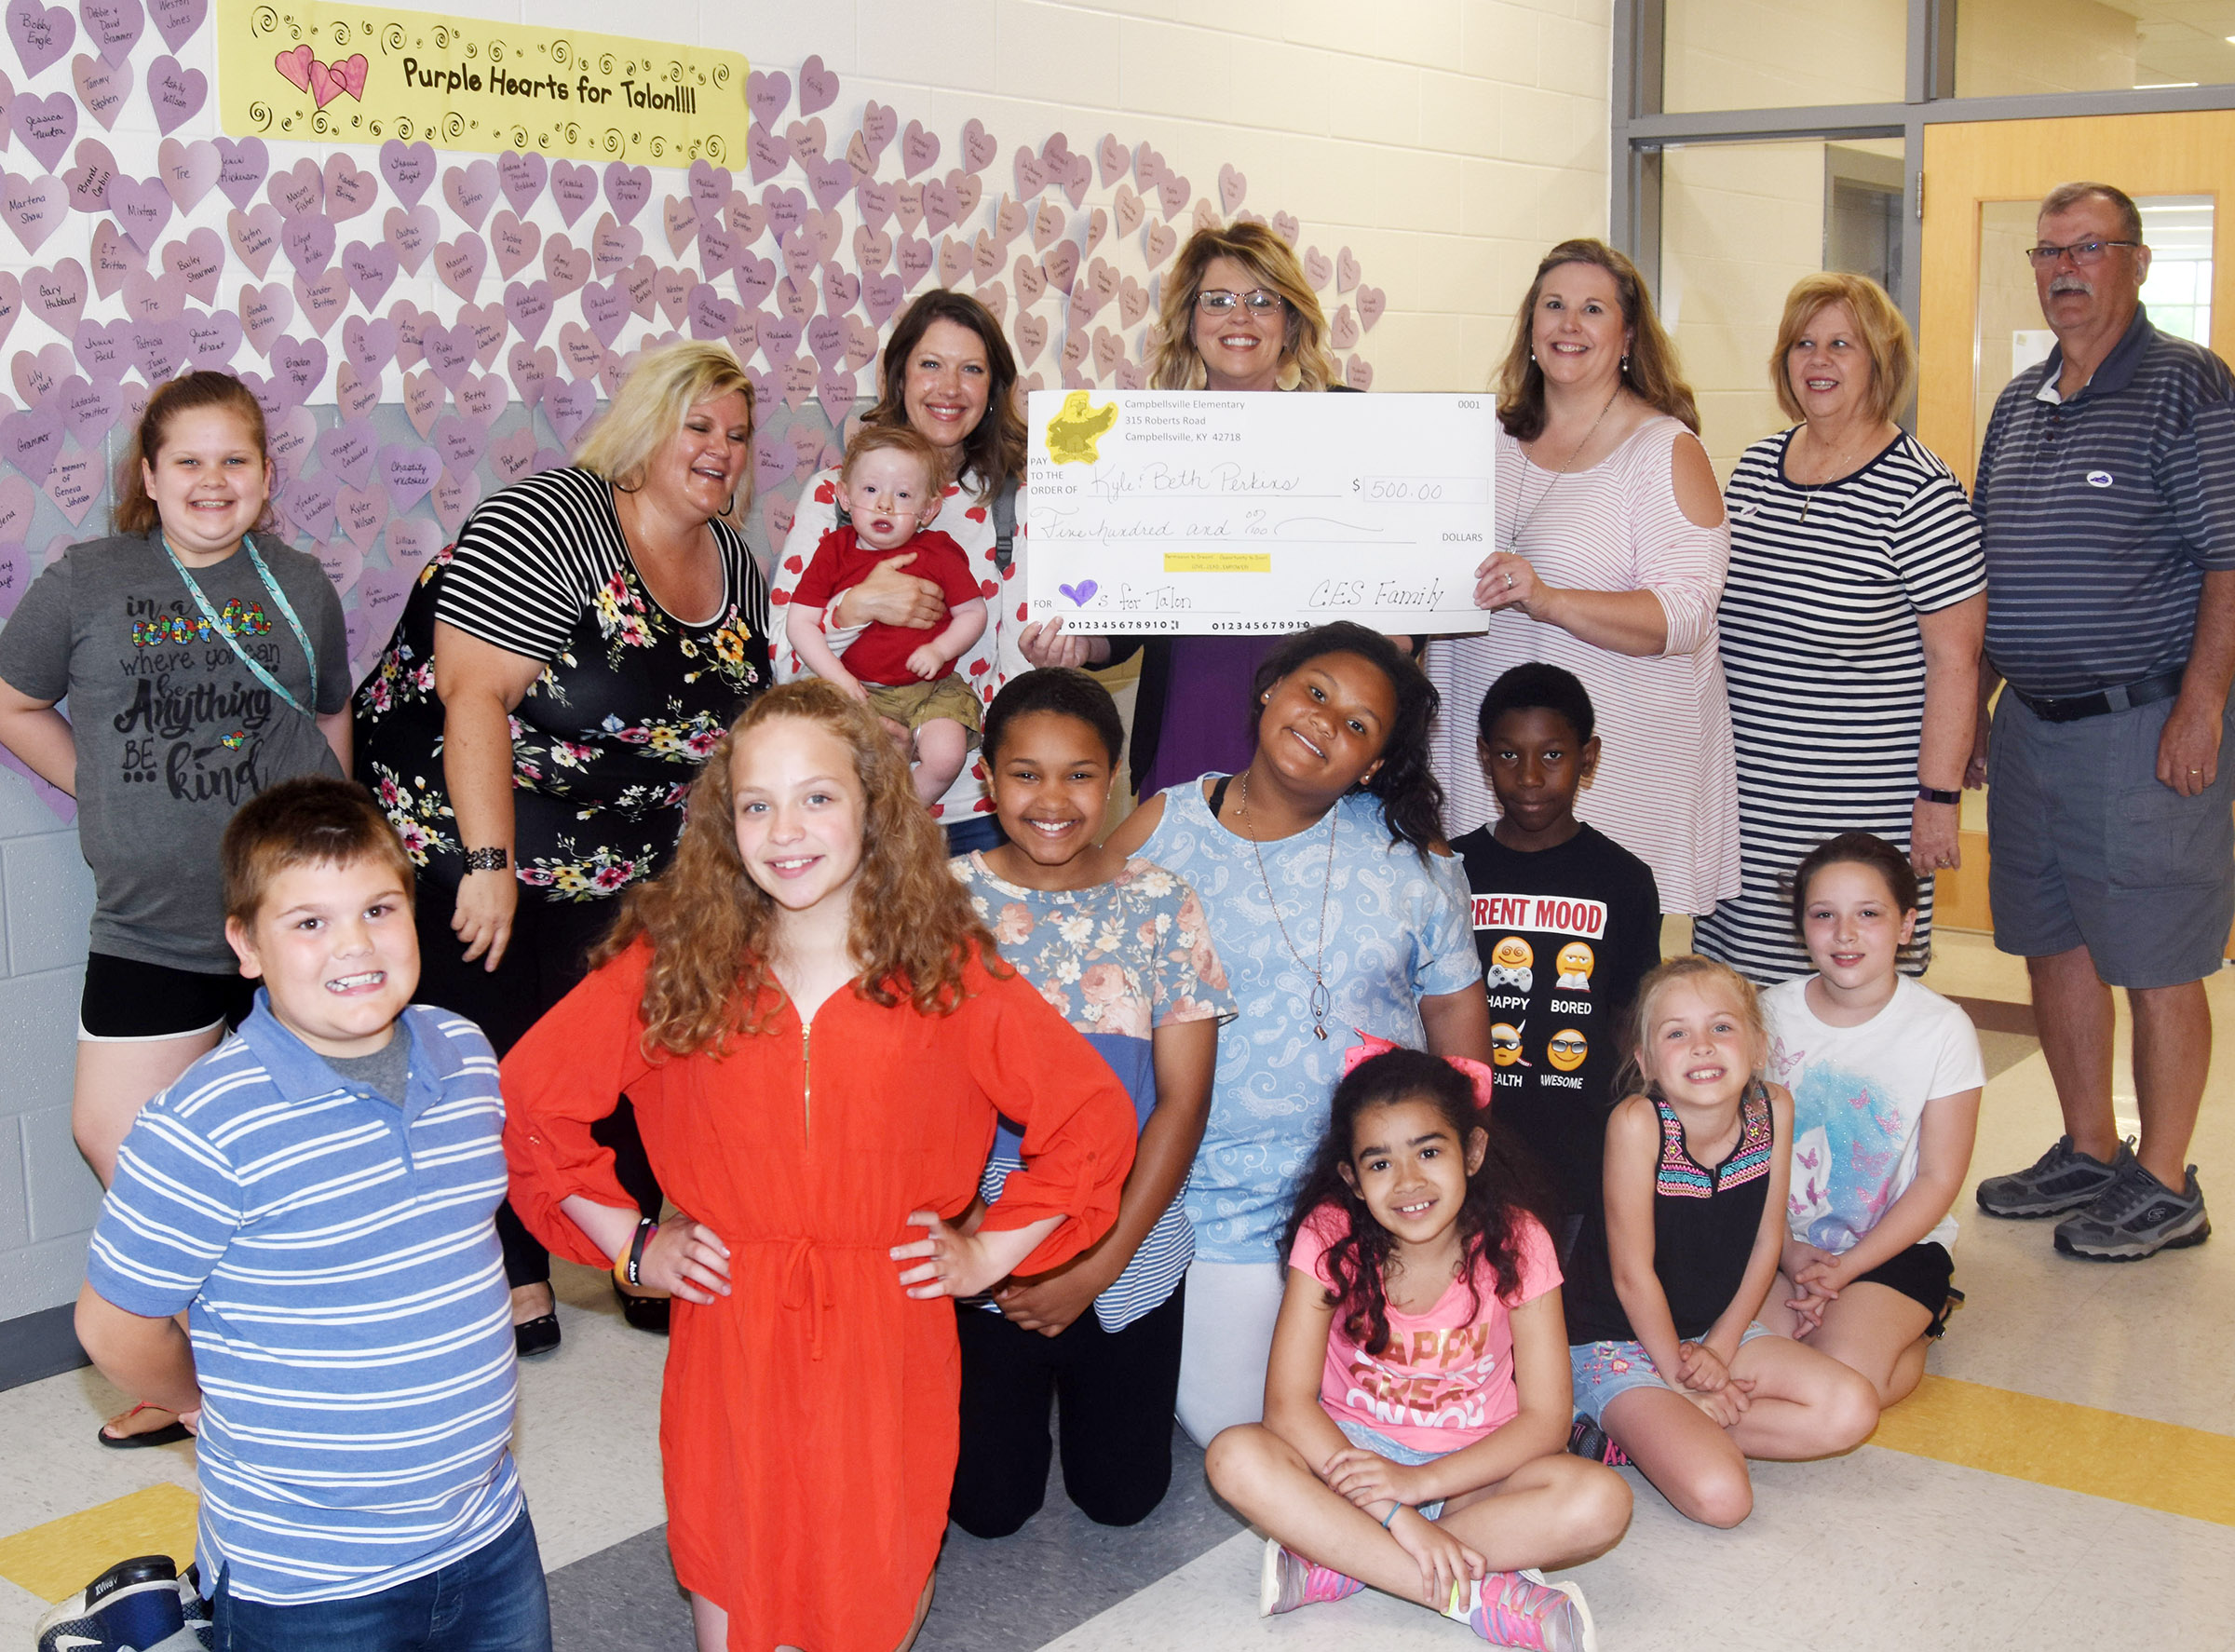 Campbellsville Elementary School students and staff members recently raised $500 to help Talon Perkins, 1, who was born with a congenital heart disease and pulmonary vein stenosis. Students recently presented Talon and his family members with a check. CES students in front are, from left, fifth-graders Logan England, Deanna Reardon, Jaclyn Jackson and Dezarae Washington and third-graders Sophia Santos, Jaron Johnson, Ava Ellis and Keely Rakes. Back, Talon's cousin Kyndall Cox, Talon's aunt Allison, Cox, an exceptional child educator at CES, Beth Perkins holding Talon, CES Principal Elisha Rhodes, CES music teacher Cyndi Chadwick and Talon's grandparents Cindy and Tommy Perkins.